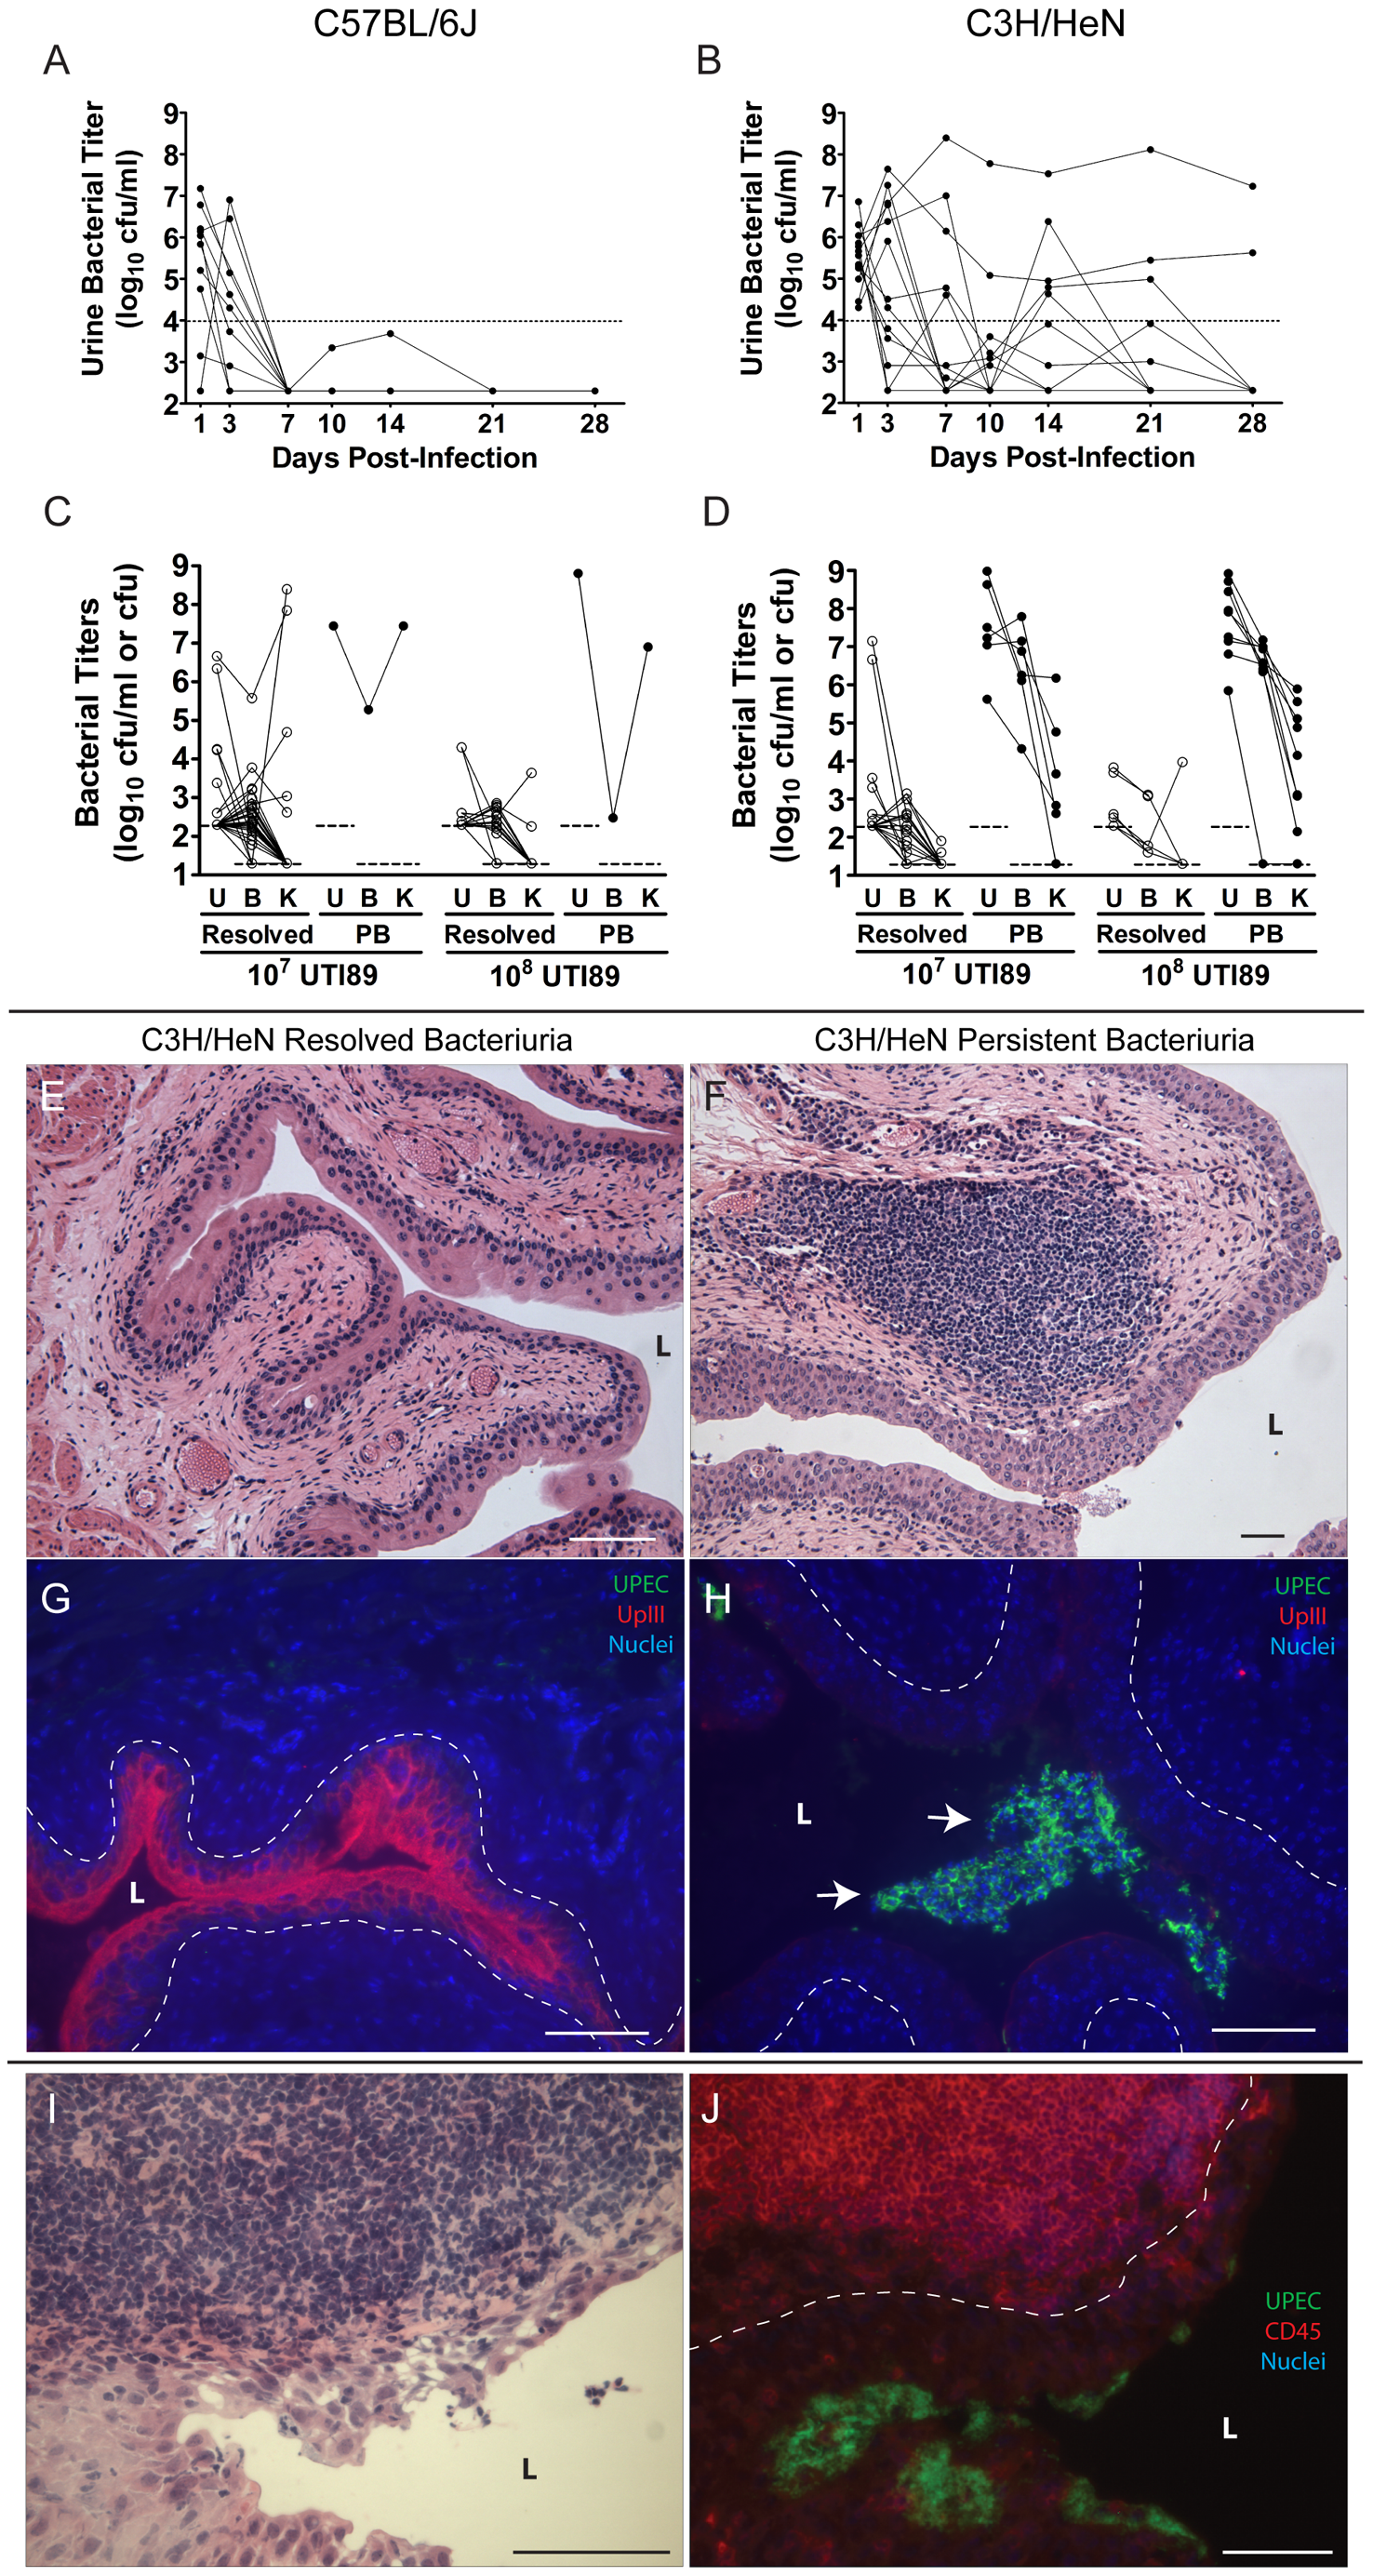 C3H/HeN mice develop chronic cystitis in response to UPEC infection in an infectious dose-dependent manner.